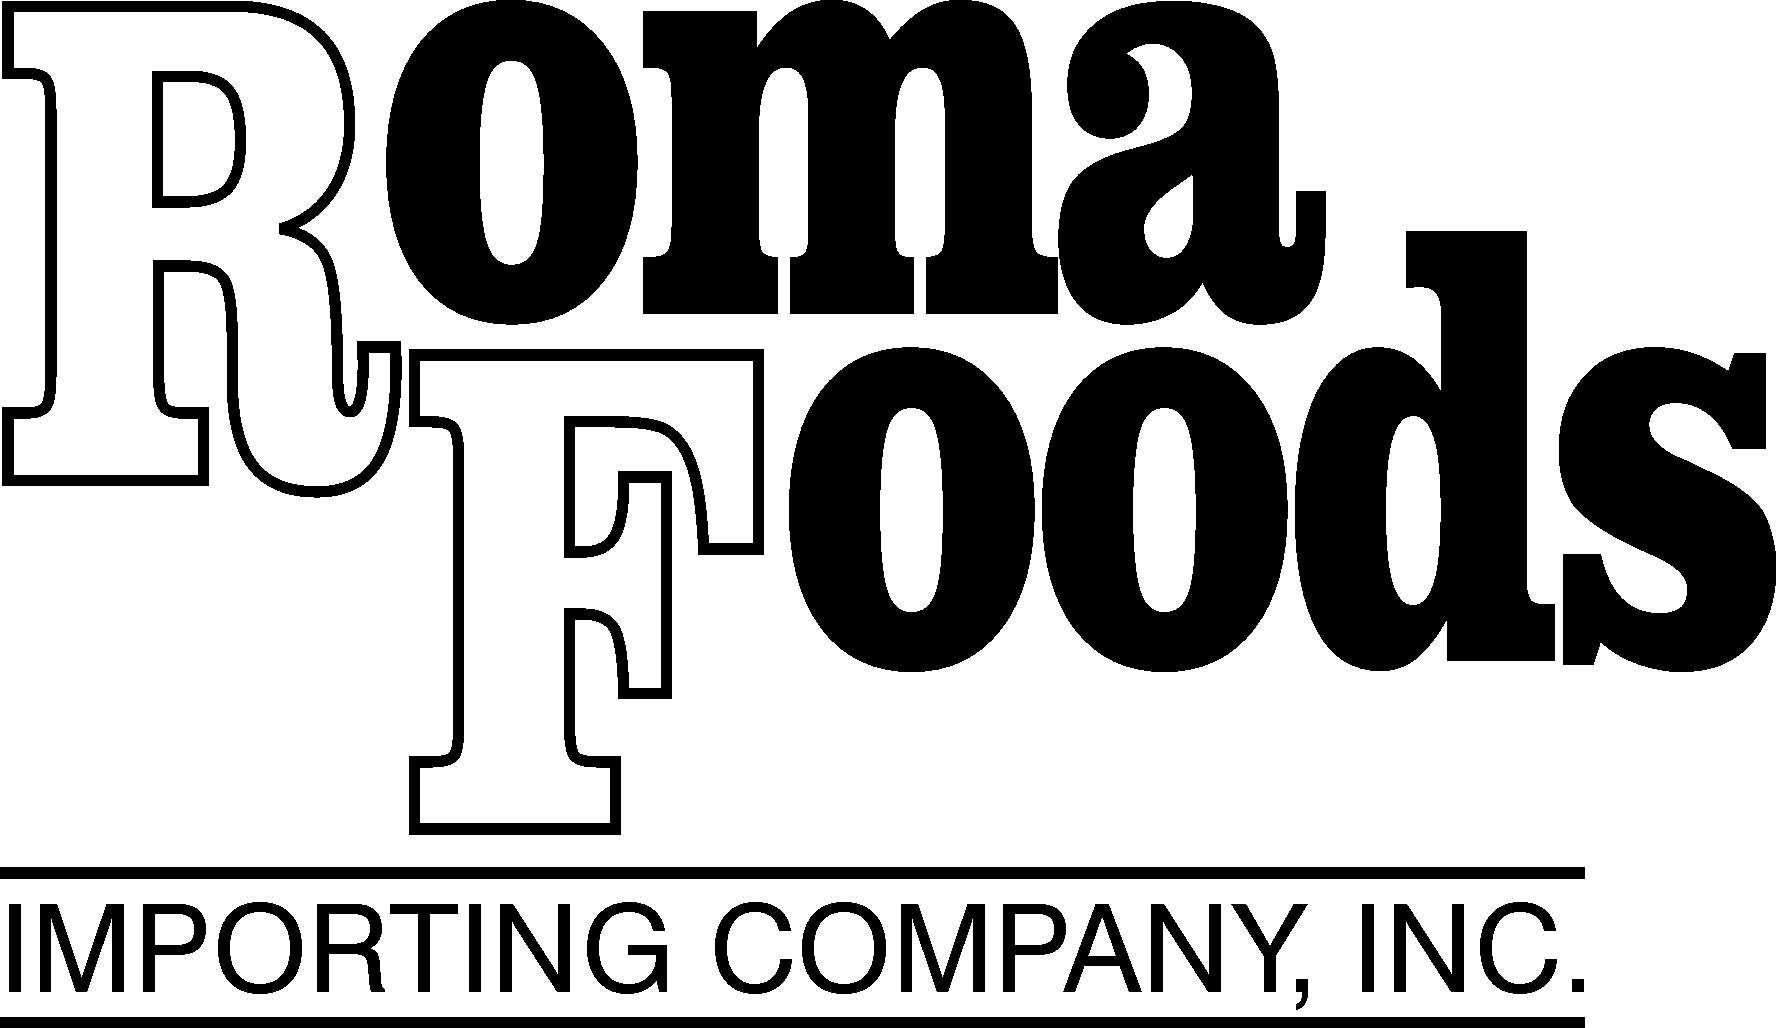 Roma Foods Logo in black and white with the words Importing Company, Inc. below